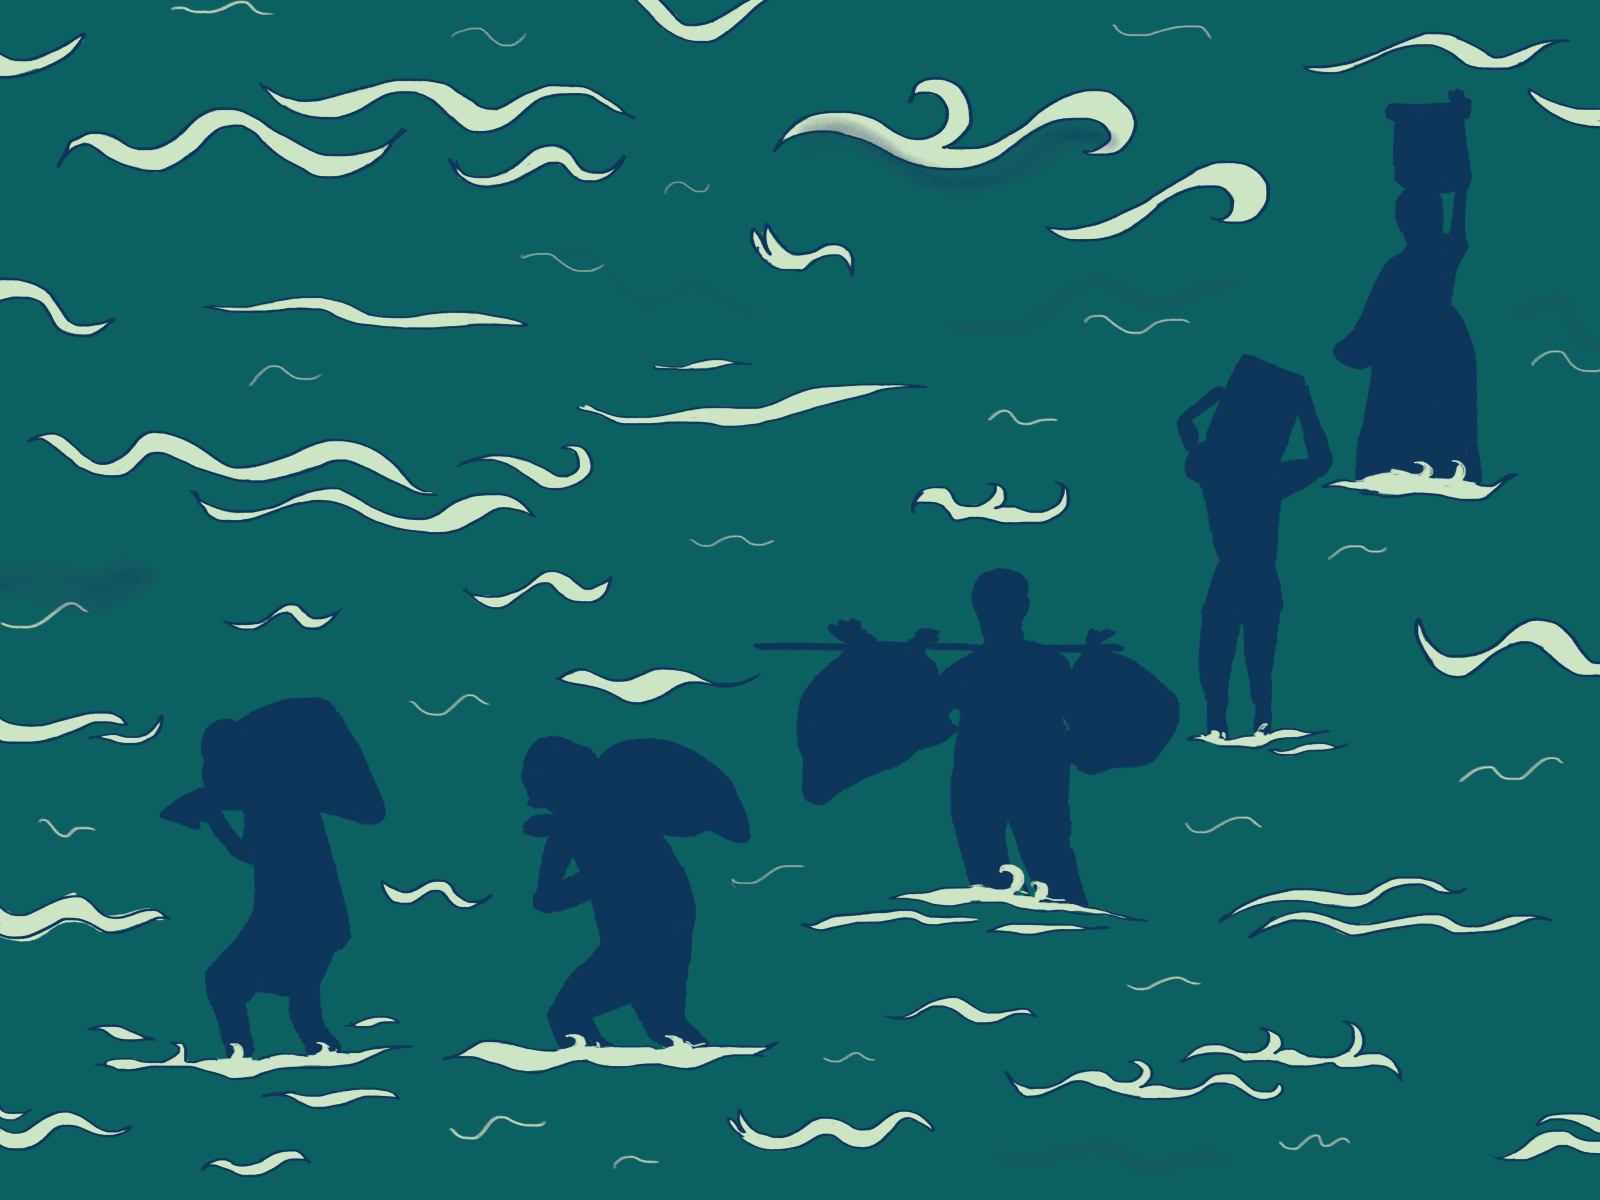 Illustration of people carrying bags and other heavy items through the water.